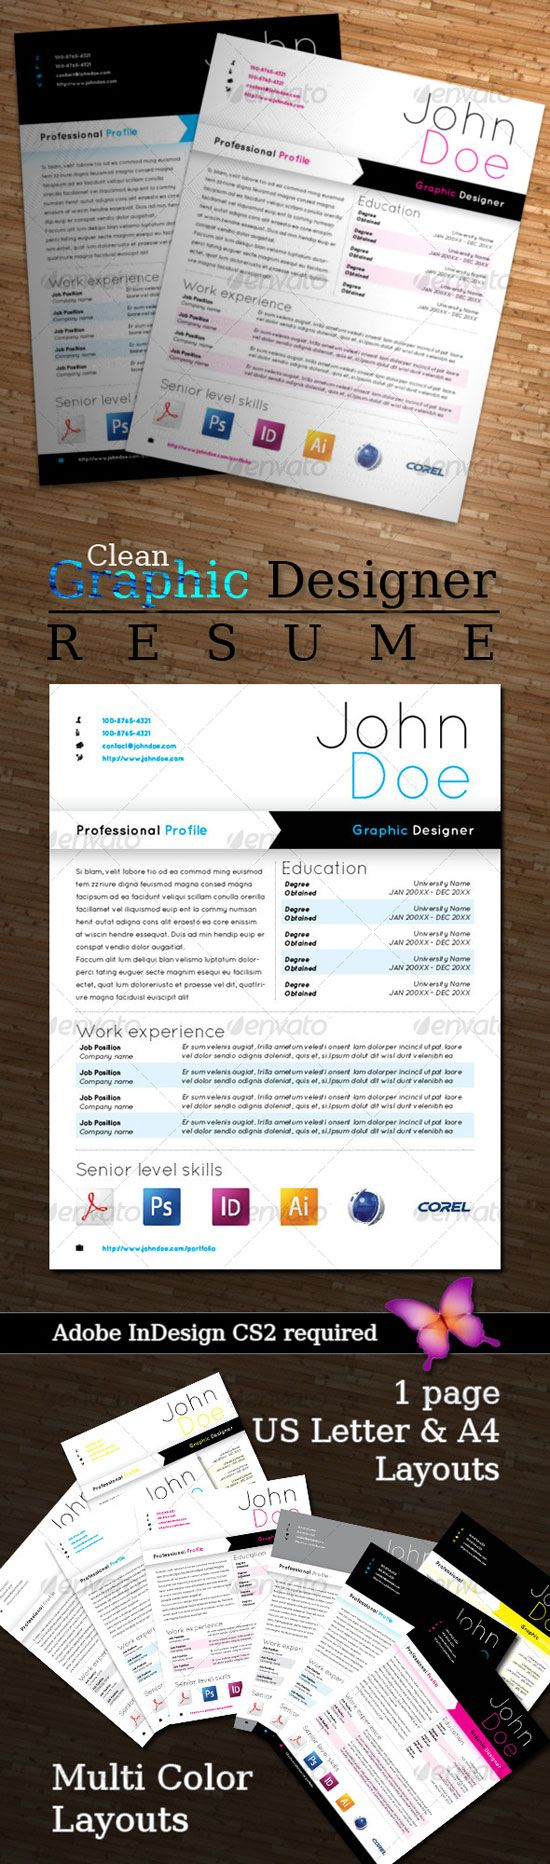 cashier resume format%0A Window display designer resume SlideShare